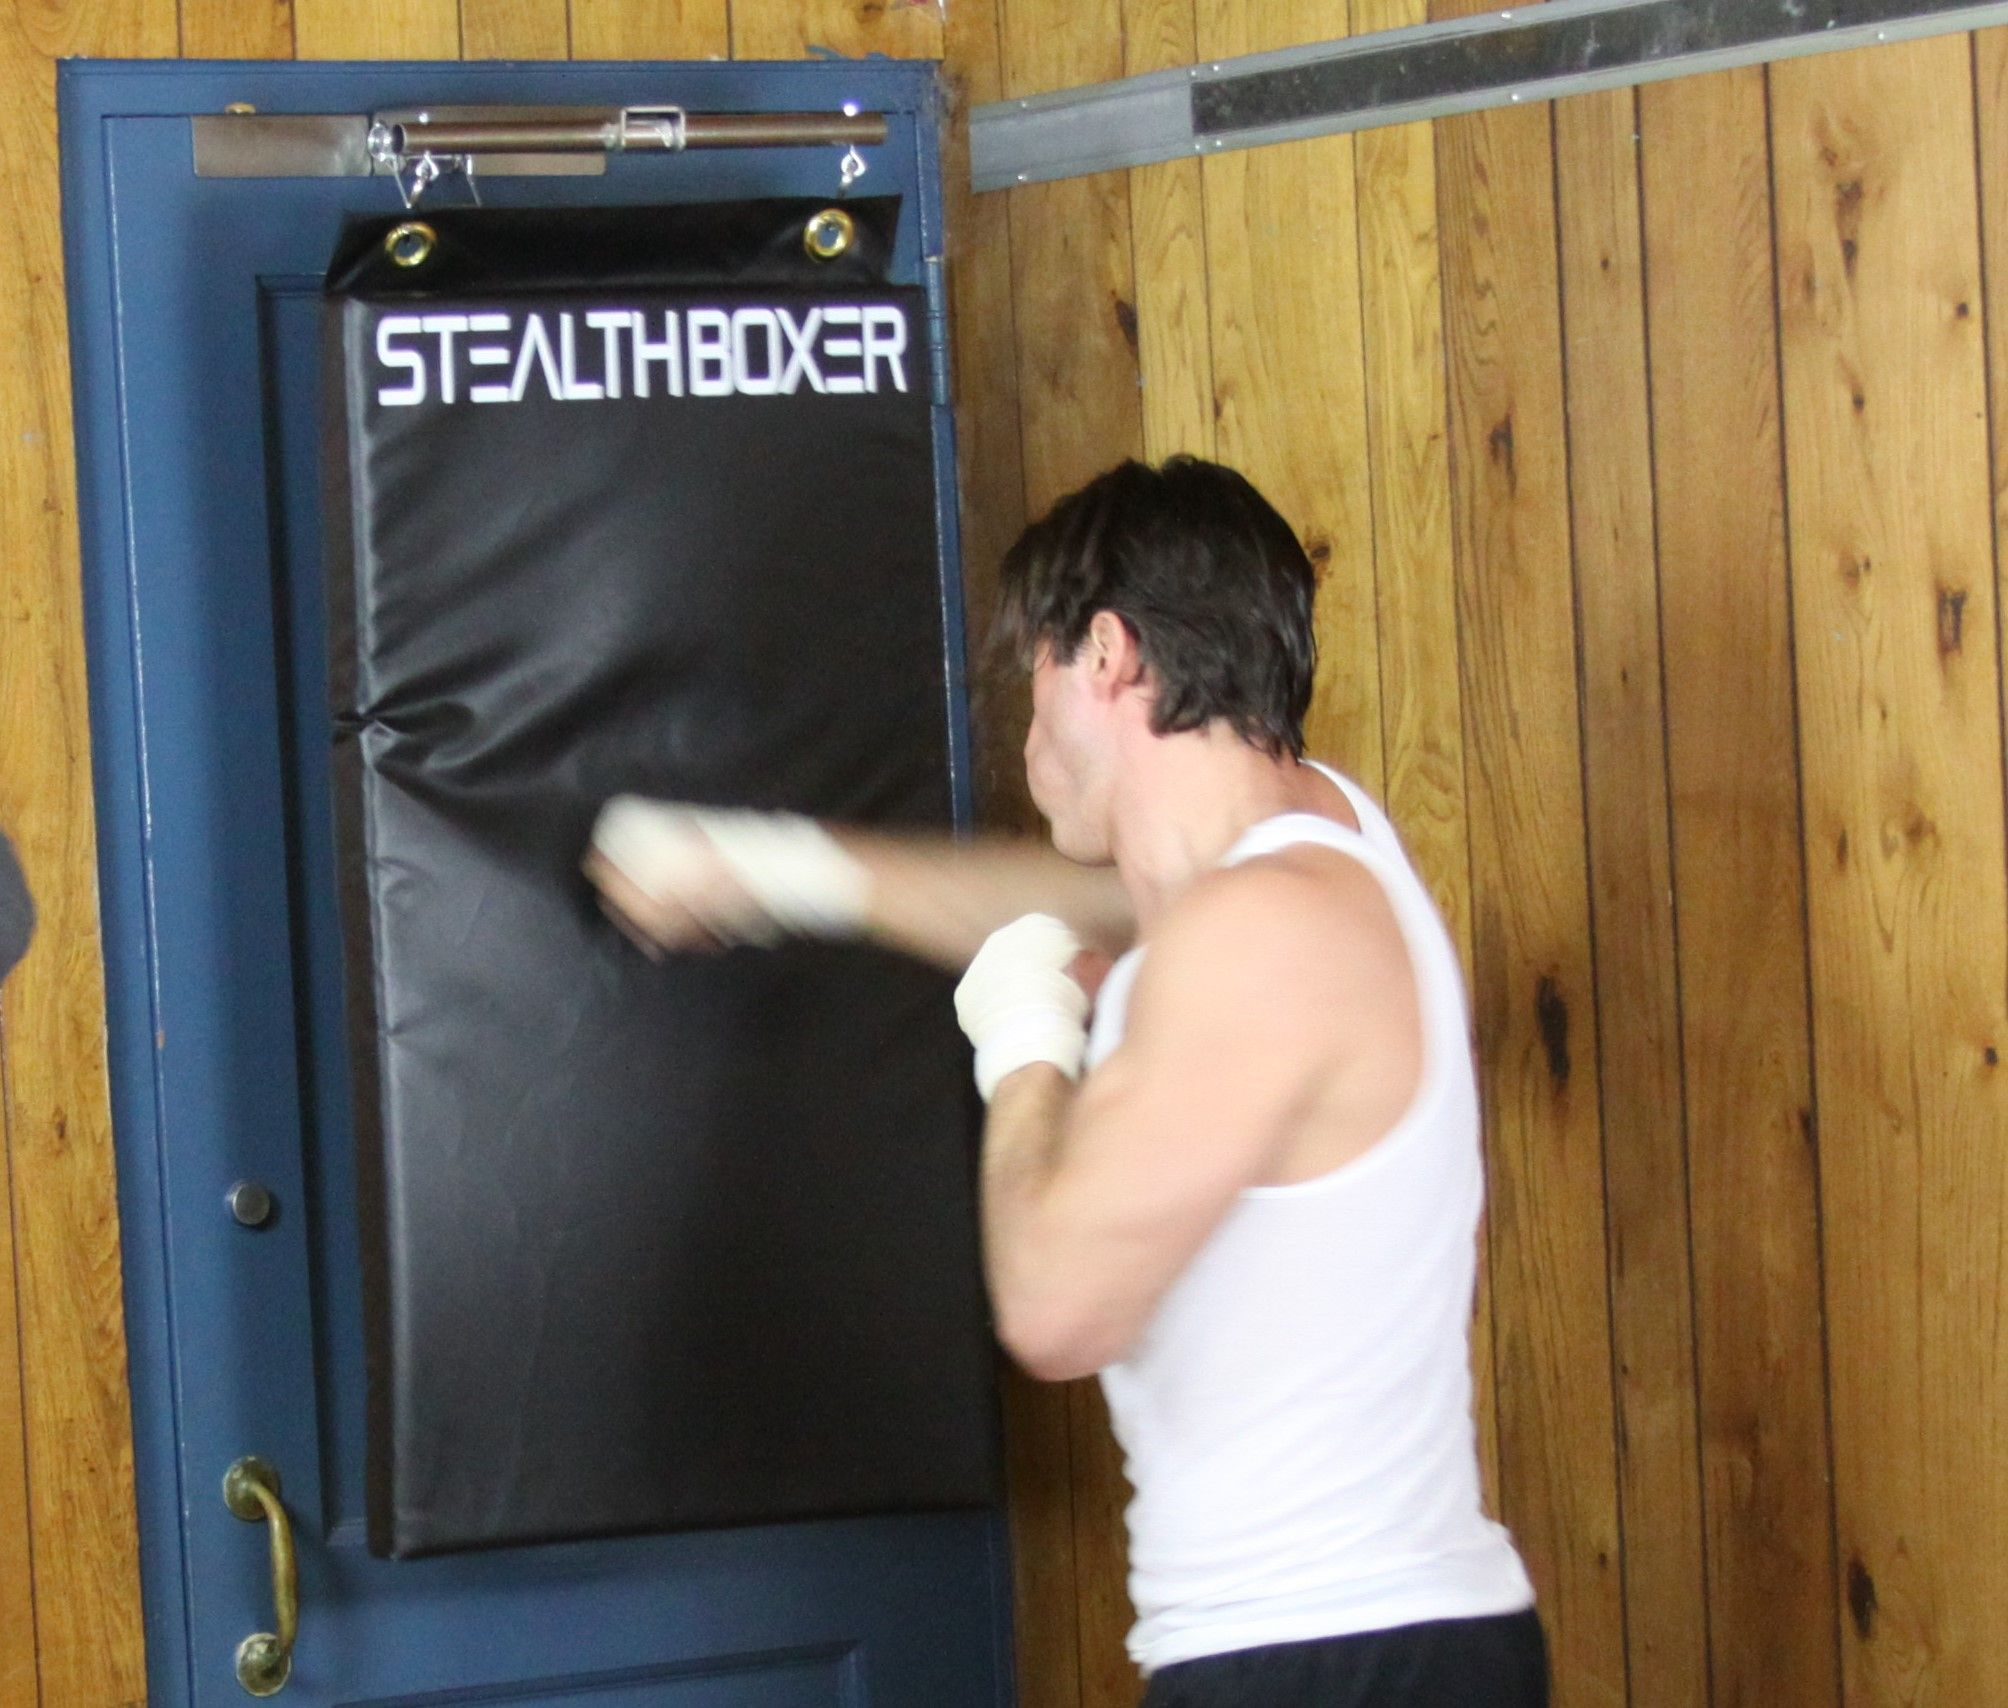 First Door-Mounted, Zero-Footprint Punching Bag Brings the Benefits of Boxing Workouts to Apartments, College Dorms, Homes and Offices